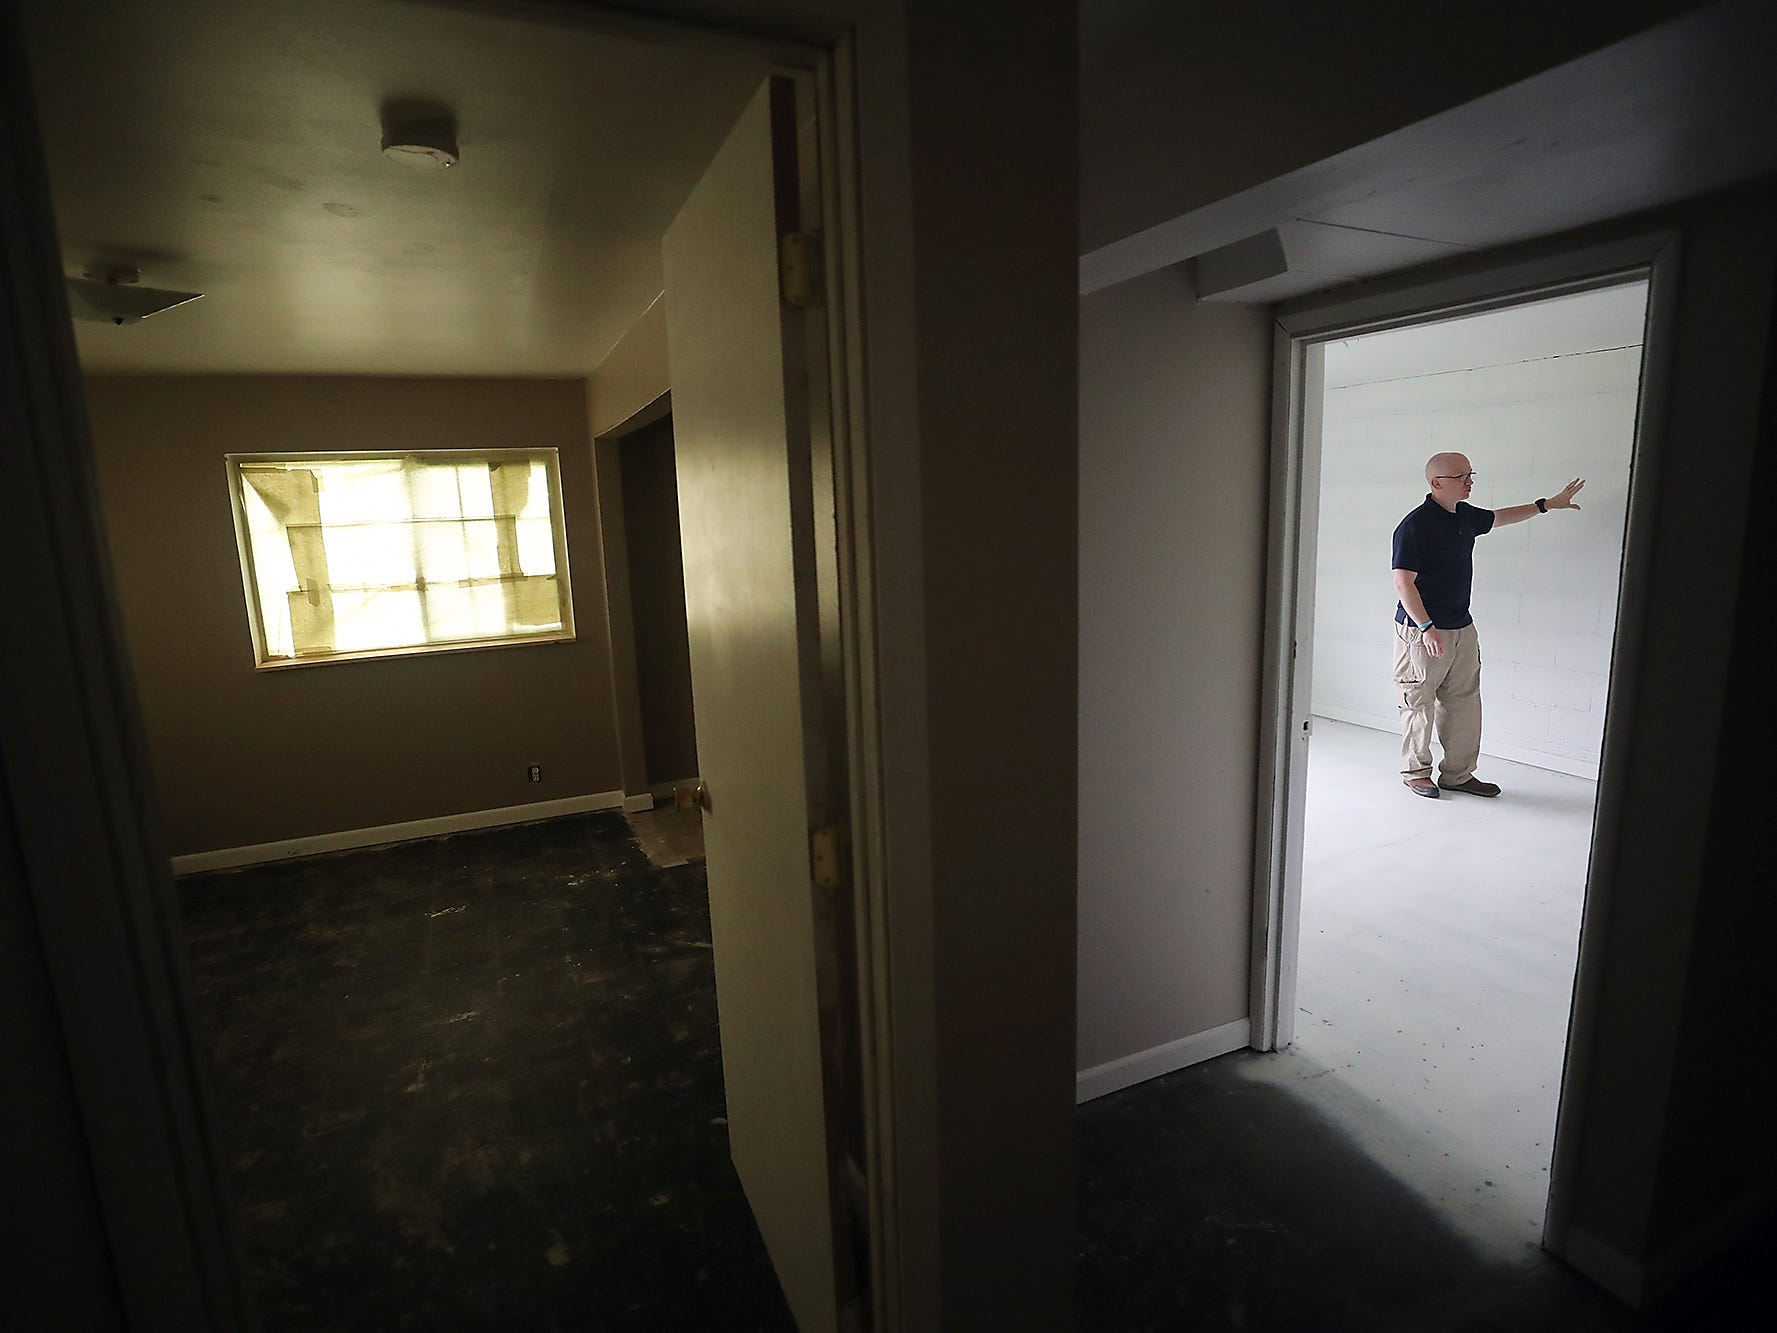 Ryan Barnes talks about the process of cleaning his Port Orchard home after they found out it was contaminated with methamphetamine, on Thursday, May 2, 2019. The basement room he is standing in had the highest concentrations of methamphetamine Ð in order to make it safe again for humans, the room had to be cleaned and painted over .